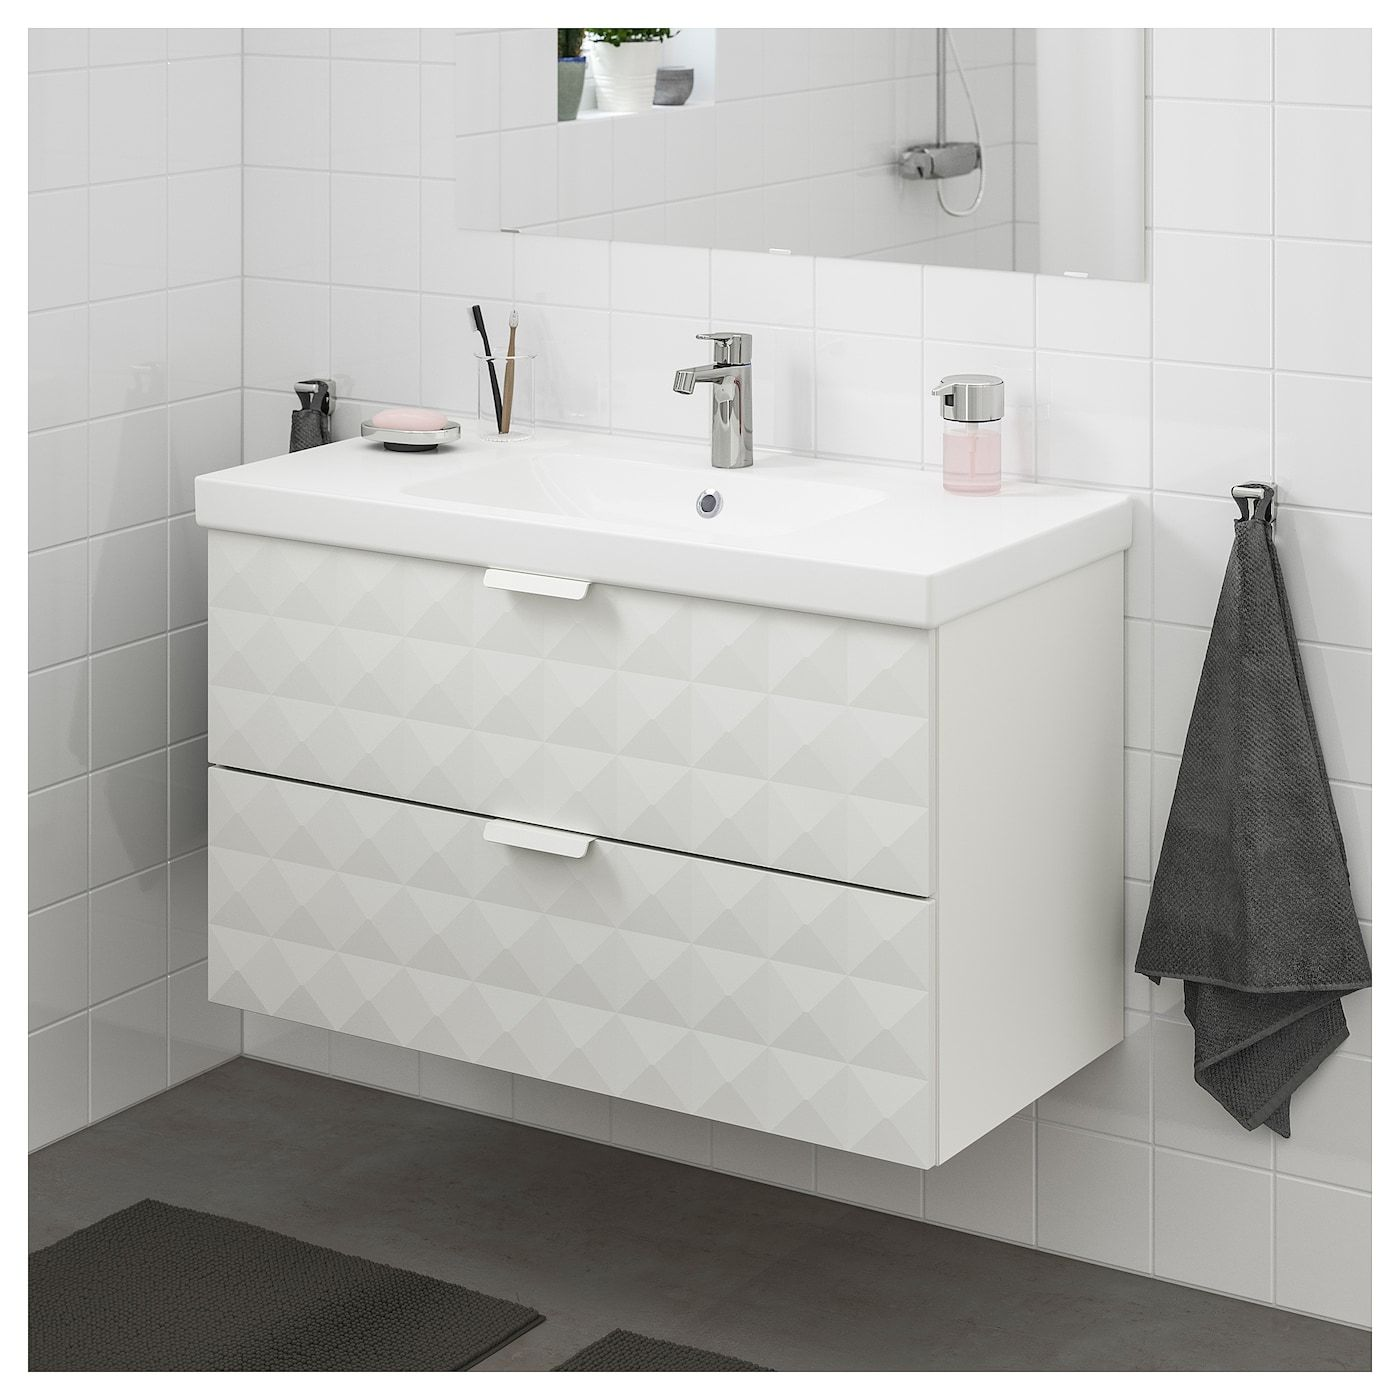 IKEA US - Furniture and Home Furnishings  Bathroom vanity, Ikea